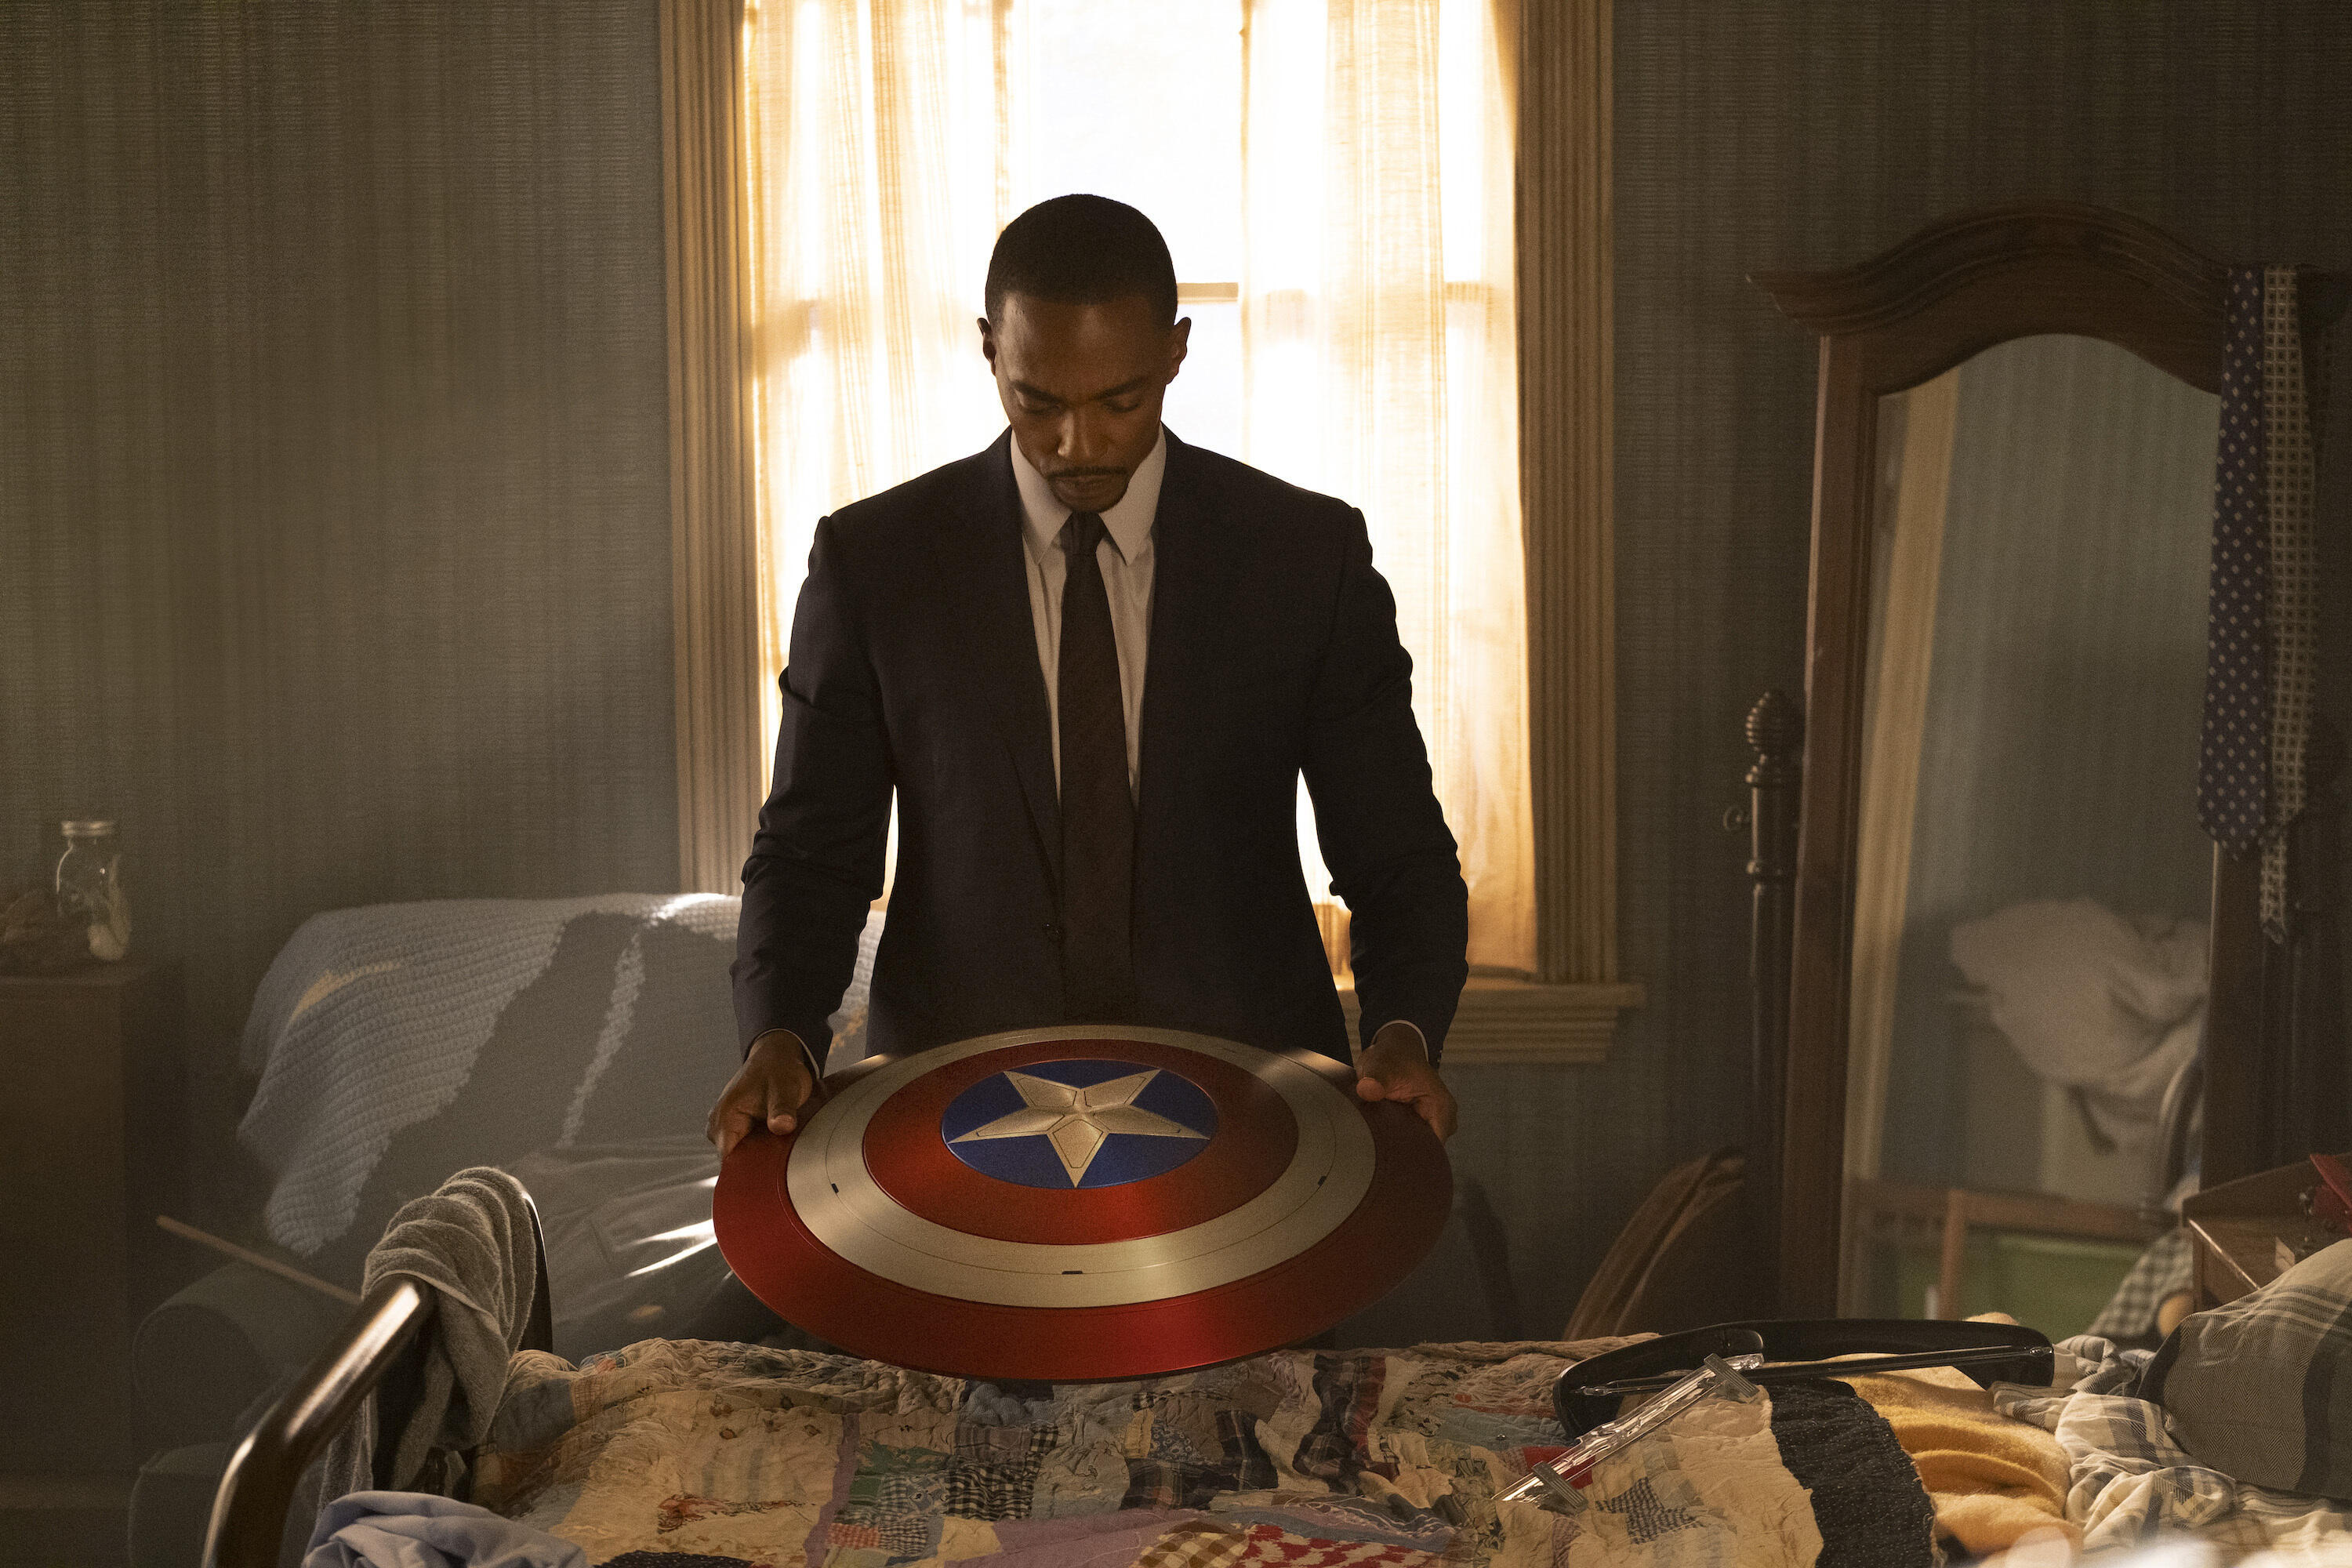 Falcon and the Winter Soldier episode 1 recap: Captain America's legacy  leaves Sam lost - CNET